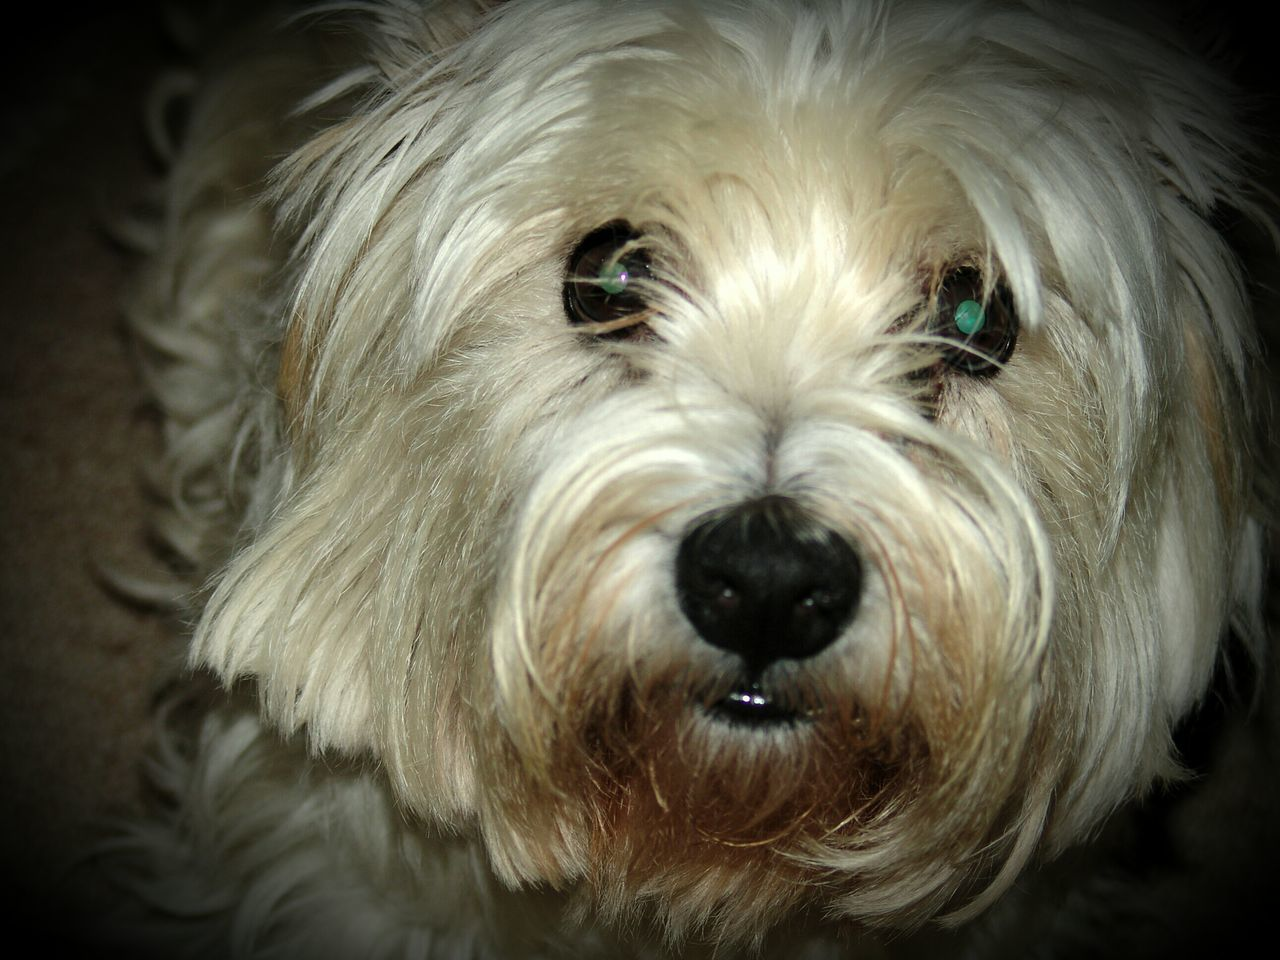 dog, pets, one animal, domestic animals, animal themes, animal hair, looking at camera, close-up, mammal, animal head, portrait, vignette, no people, indoors, black background, day